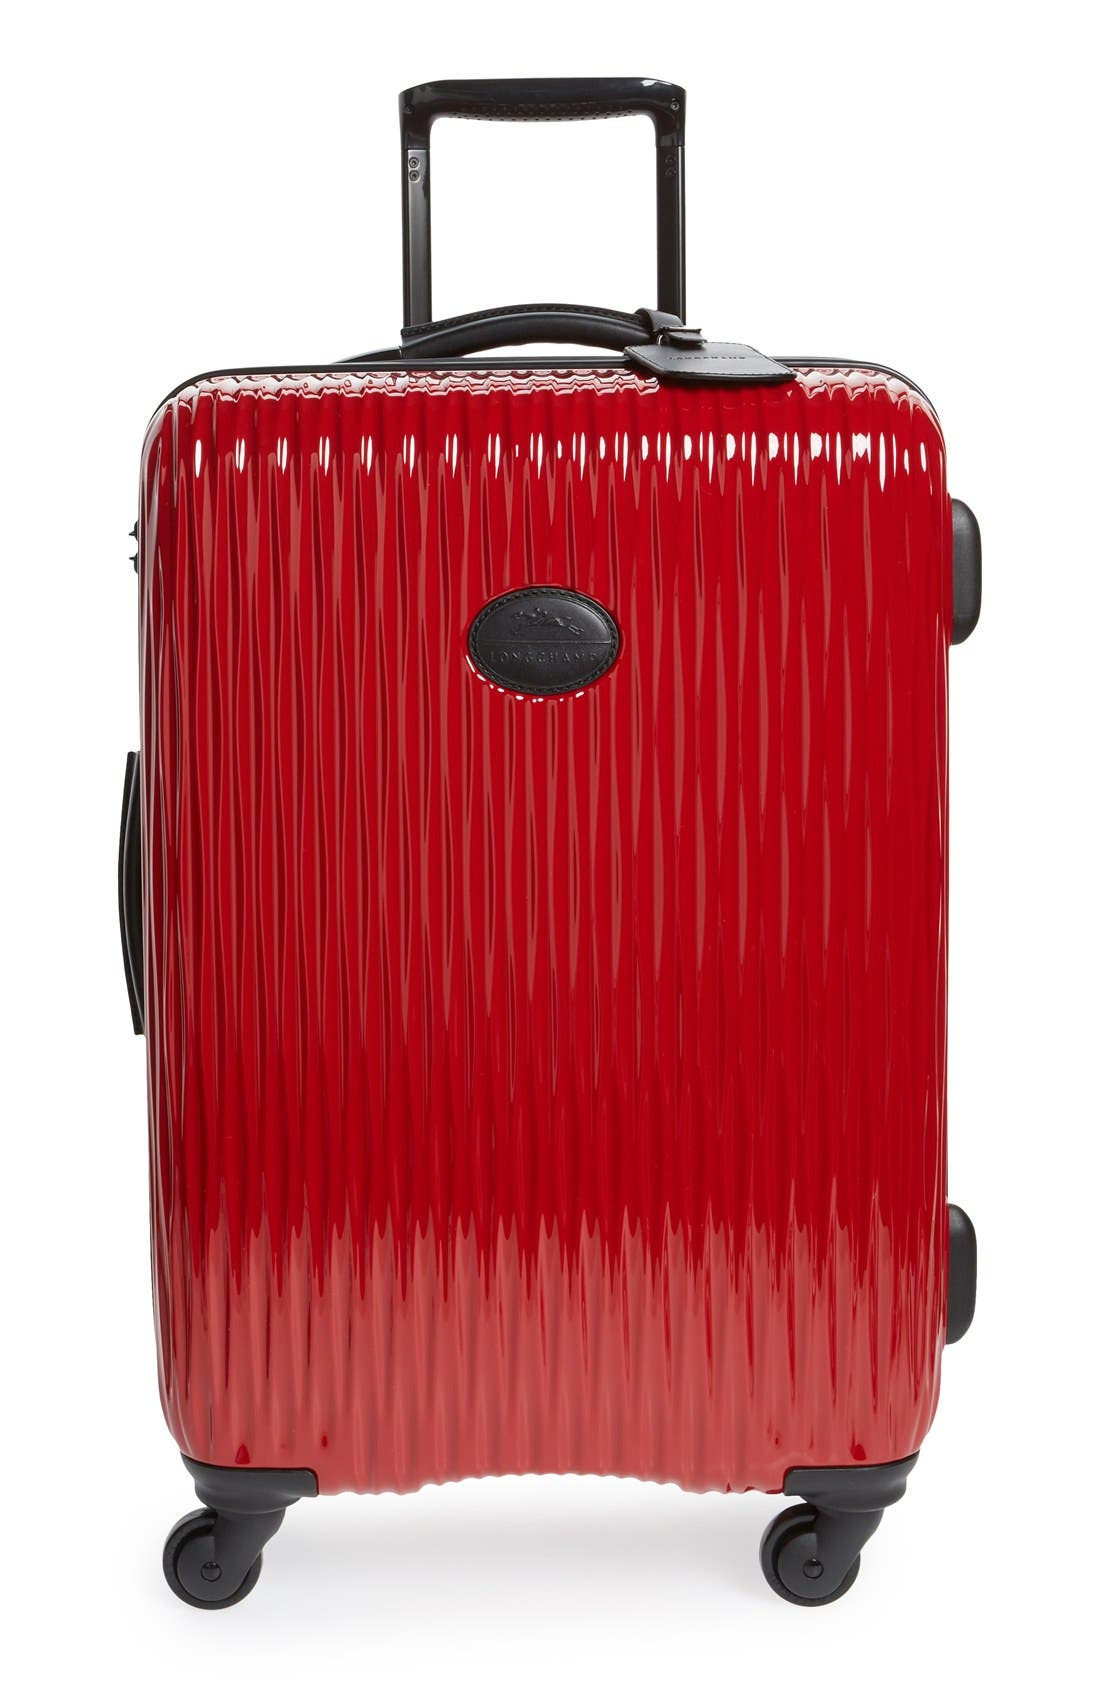 Longchamp 'Medium Fairval' Four-Wheel Hard Shell Suitcase (25 Inch)